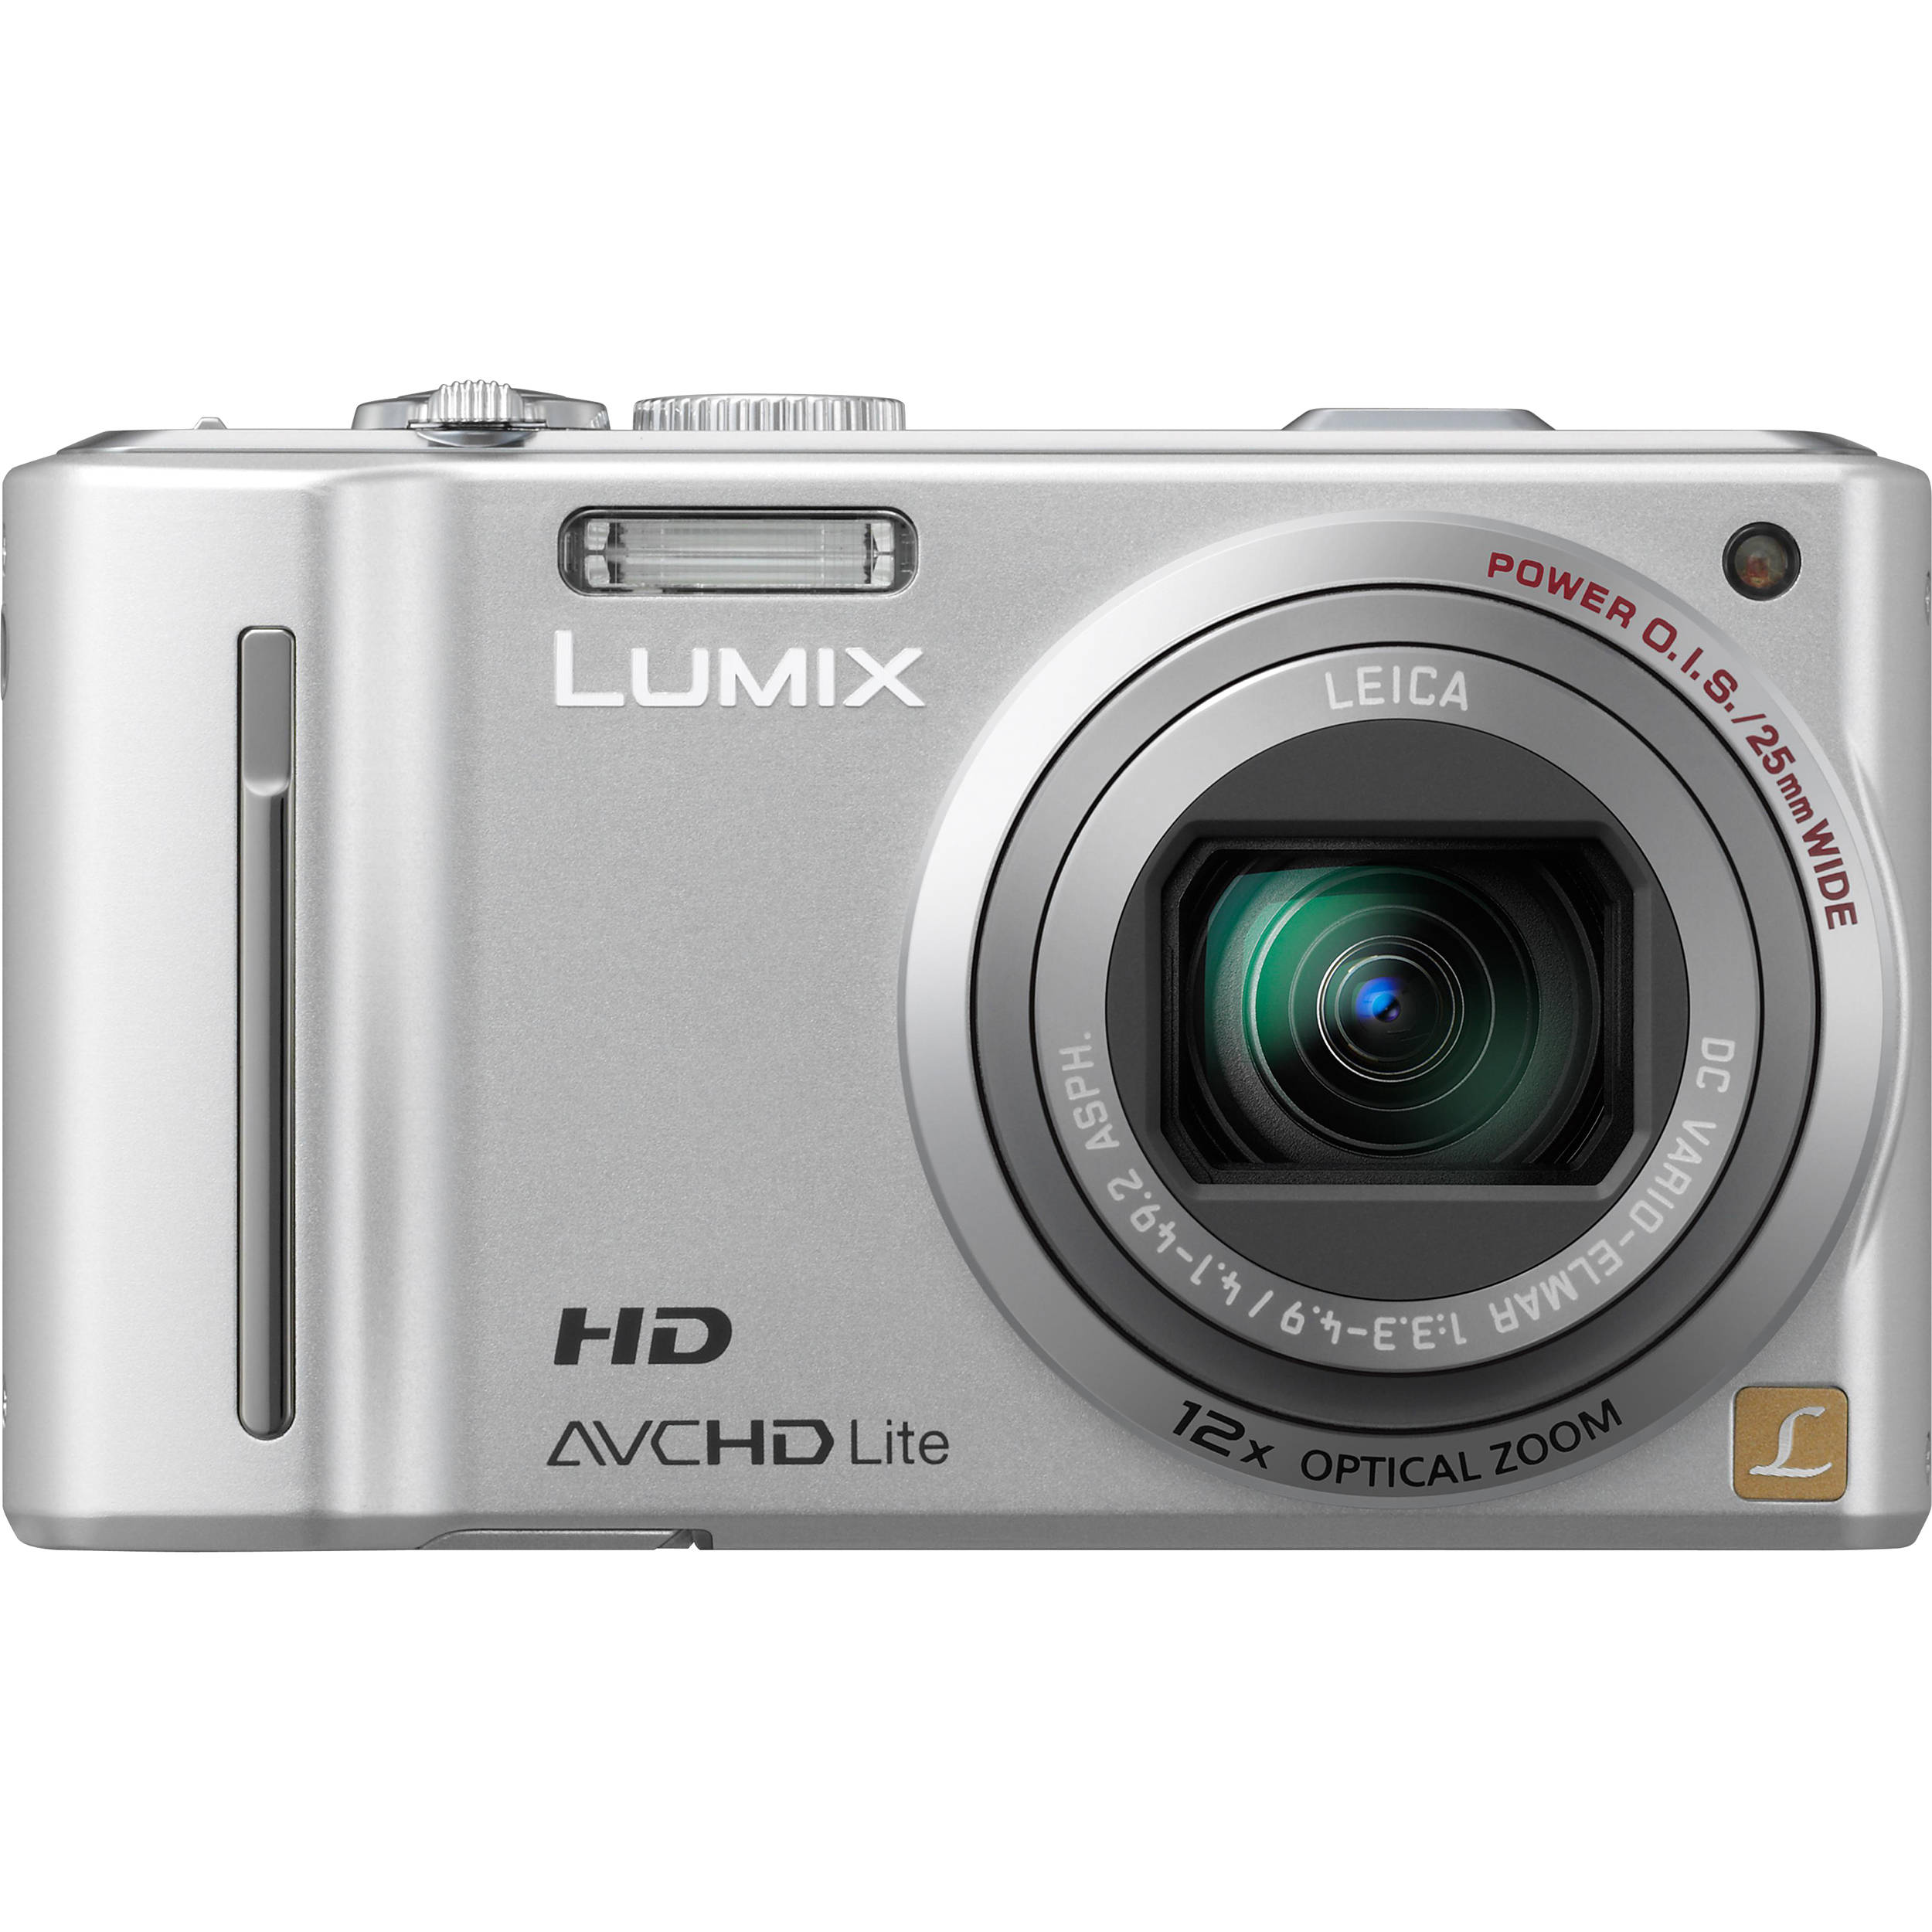 panasonic lumix dmc zs7 silver digital camera dmc zs7s b h rh bhphotovideo com panasonic dmc zs7 manual pdf panasonic dmc-sz7 manual